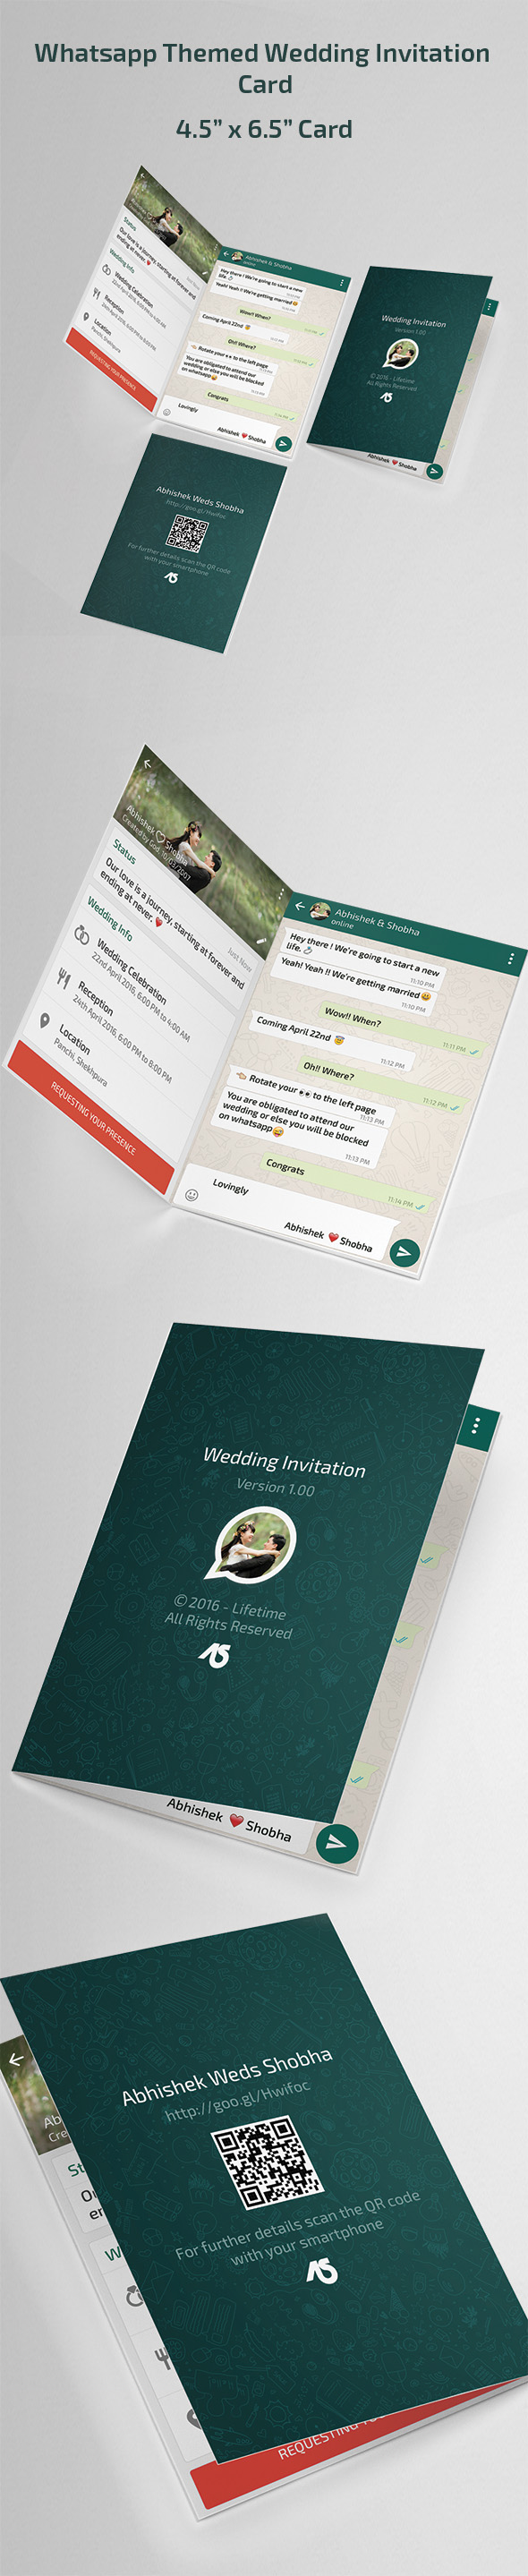 Whatsapp Themed Wedding Invitation Card Free Download On